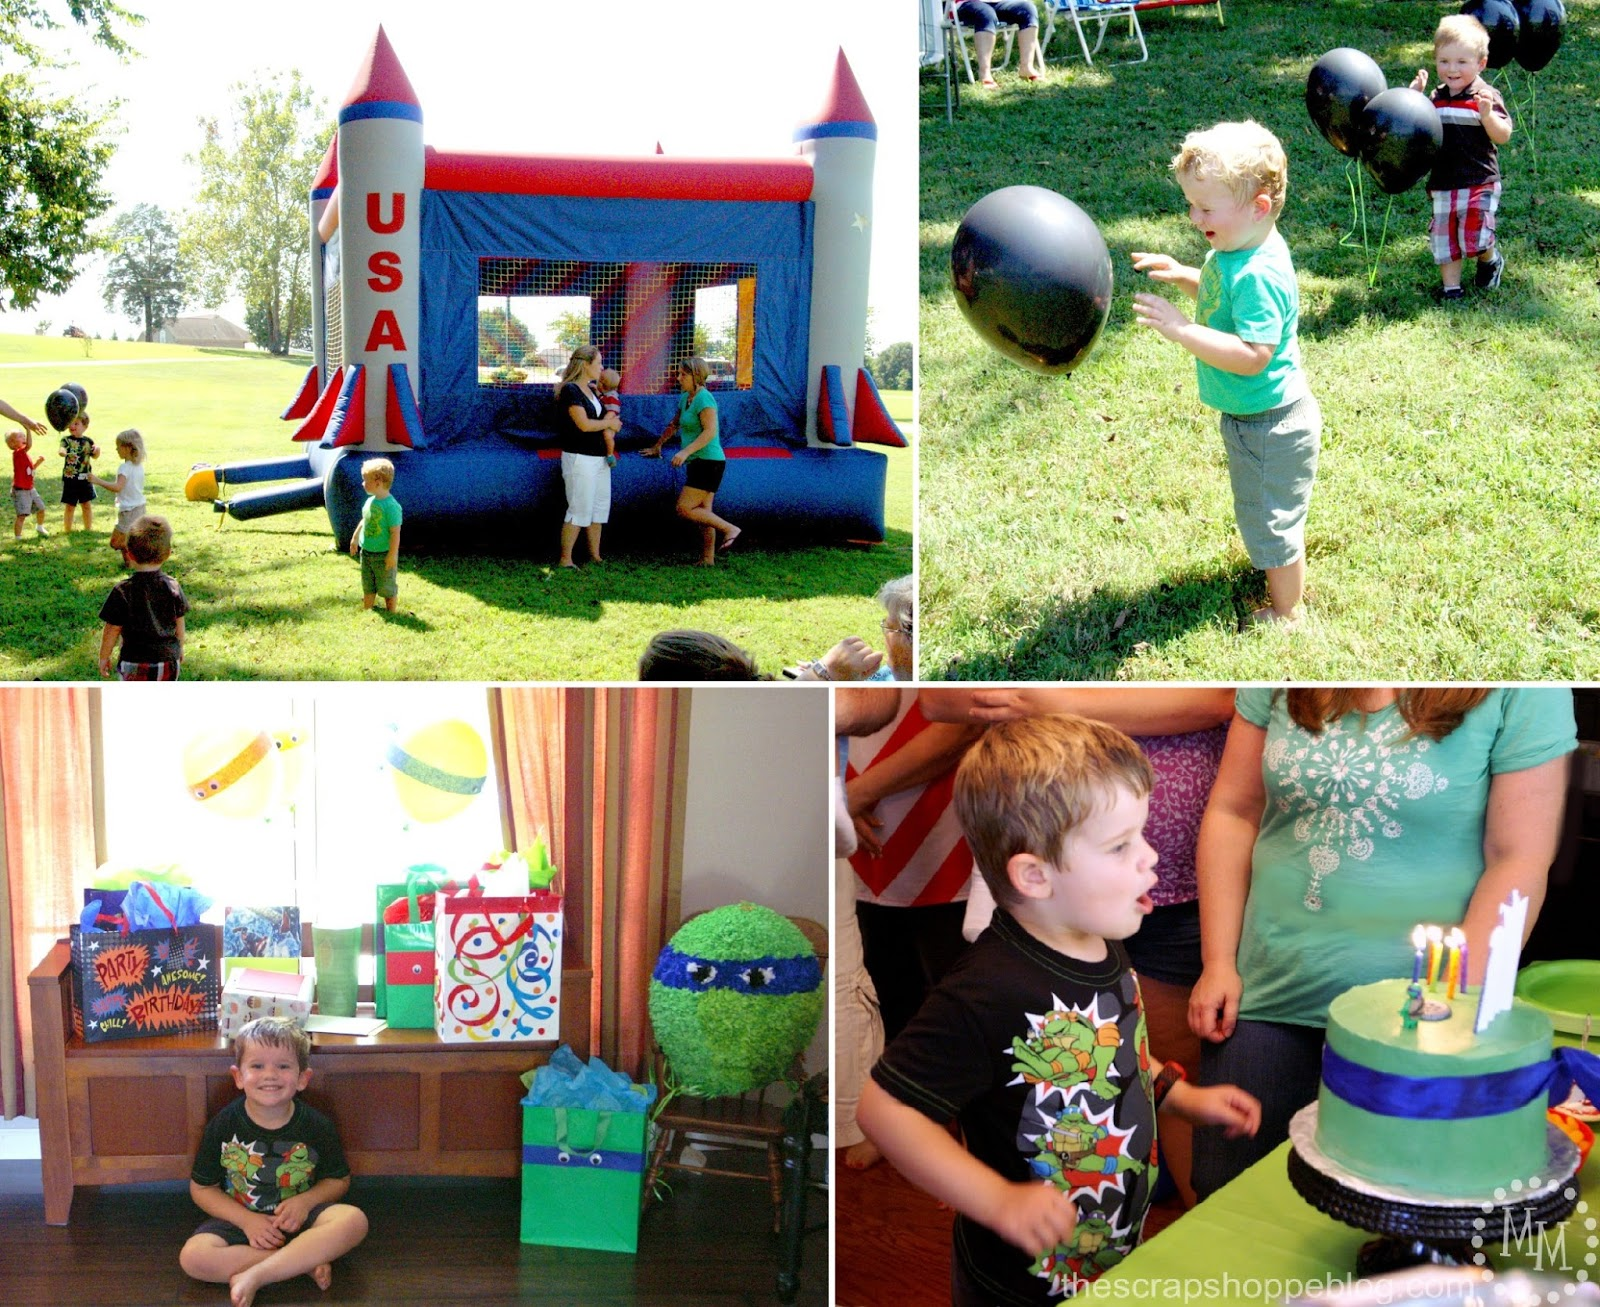 teenage mutant ninja turtle tmnt birthday party the scrap shoppe teenage mutant ninja turtle tmnt birthday party